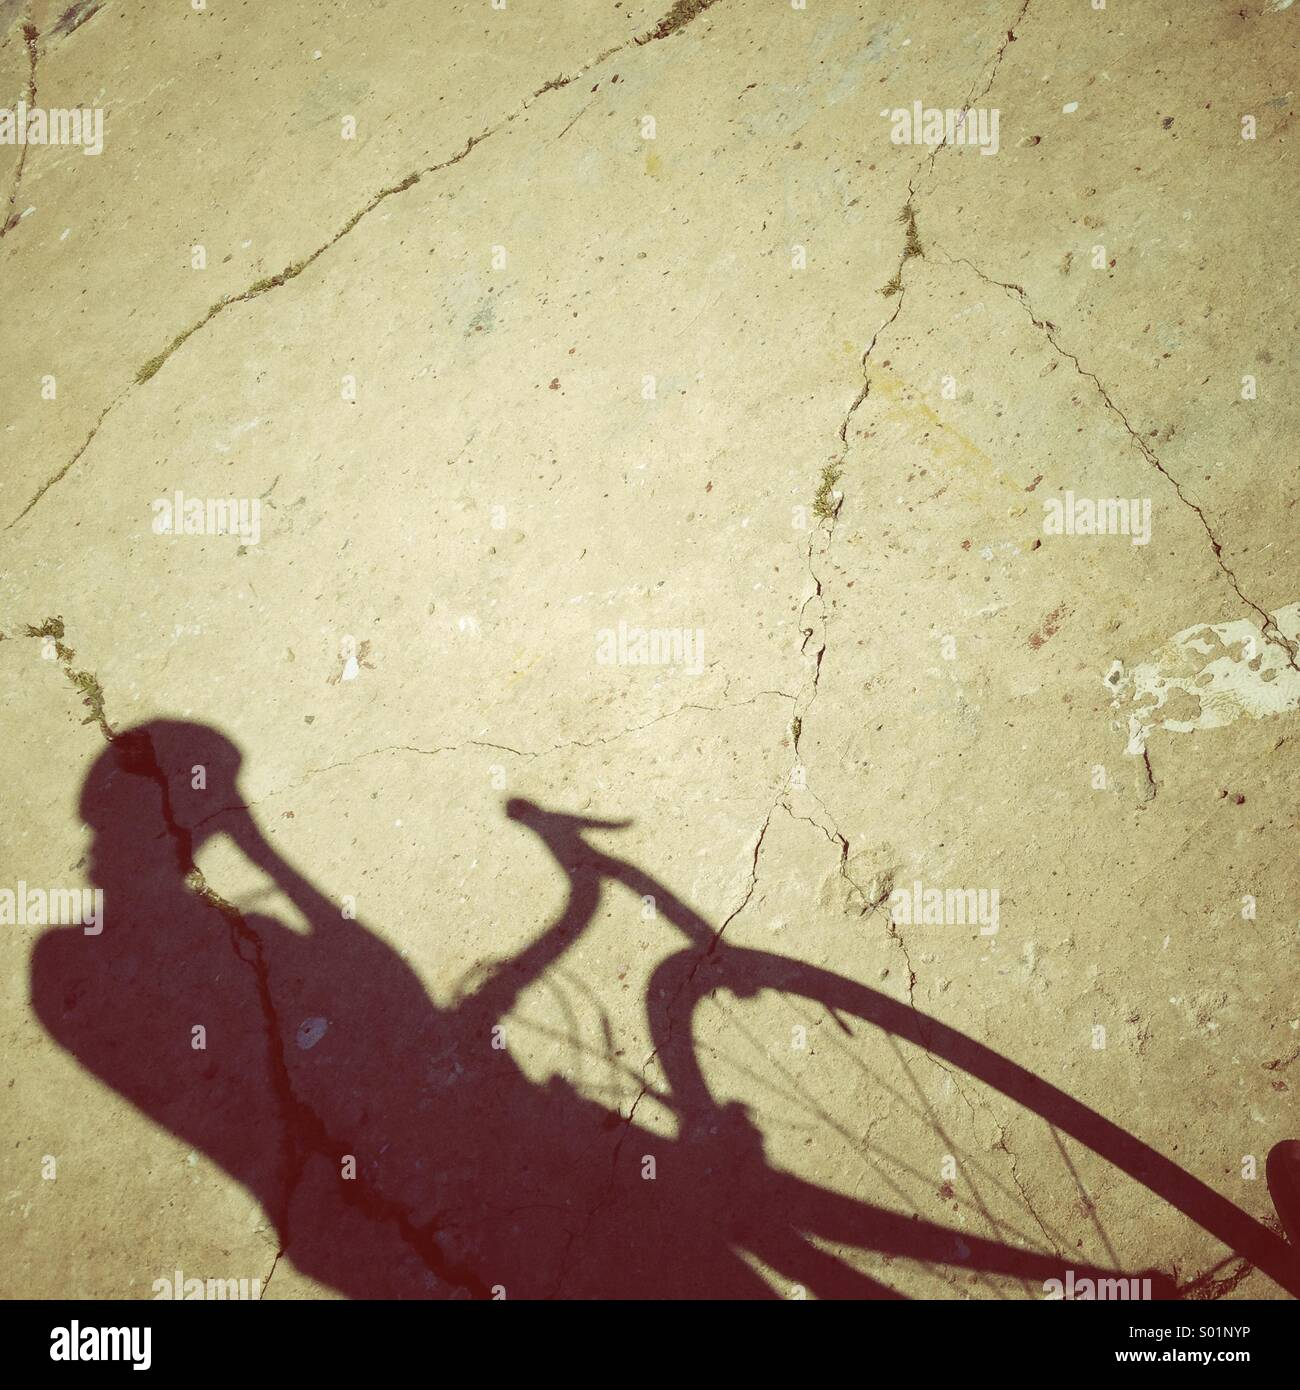 Bicycle riding in the sun - Stock Image